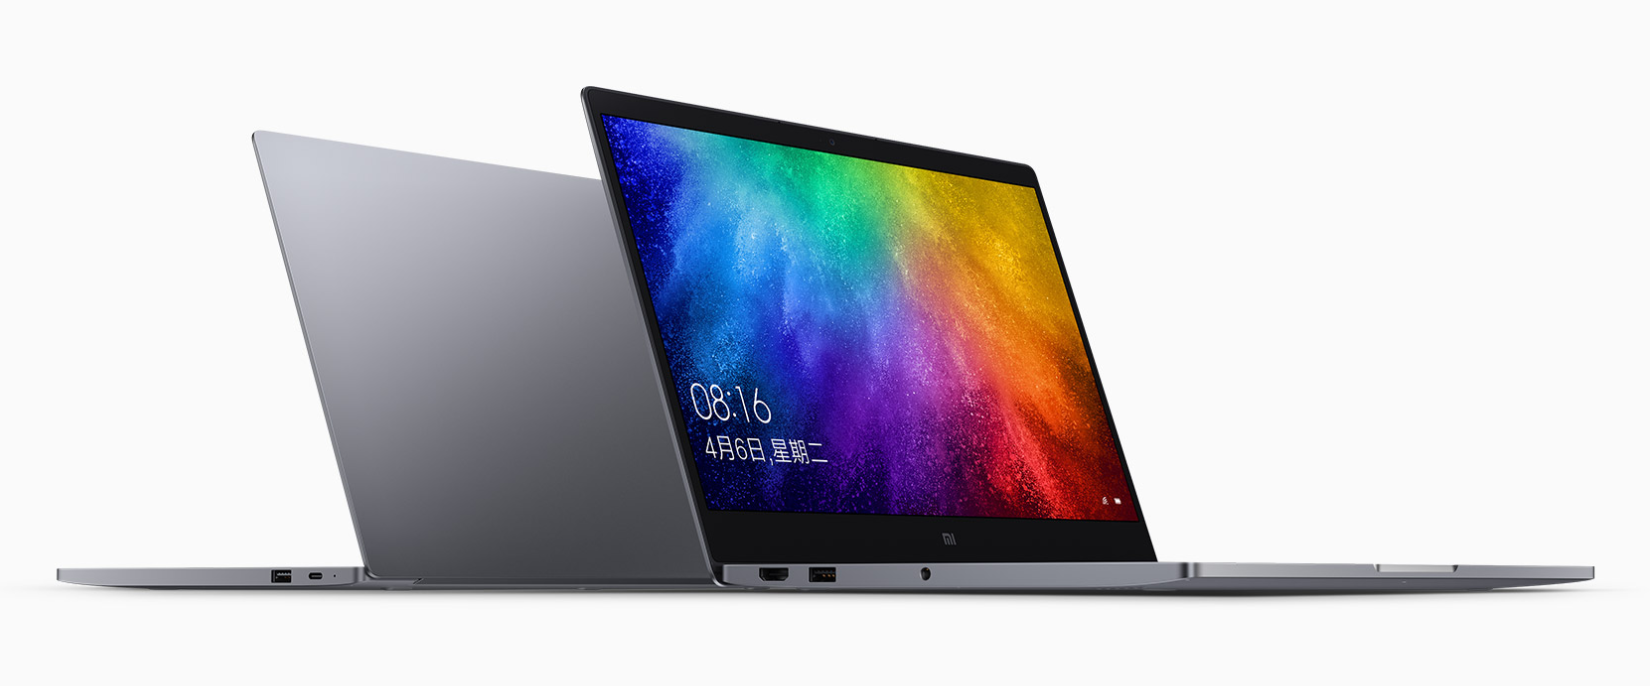 Xiaomi Air i7-8550U GeForce MX150 8 / 256GB - Banggood